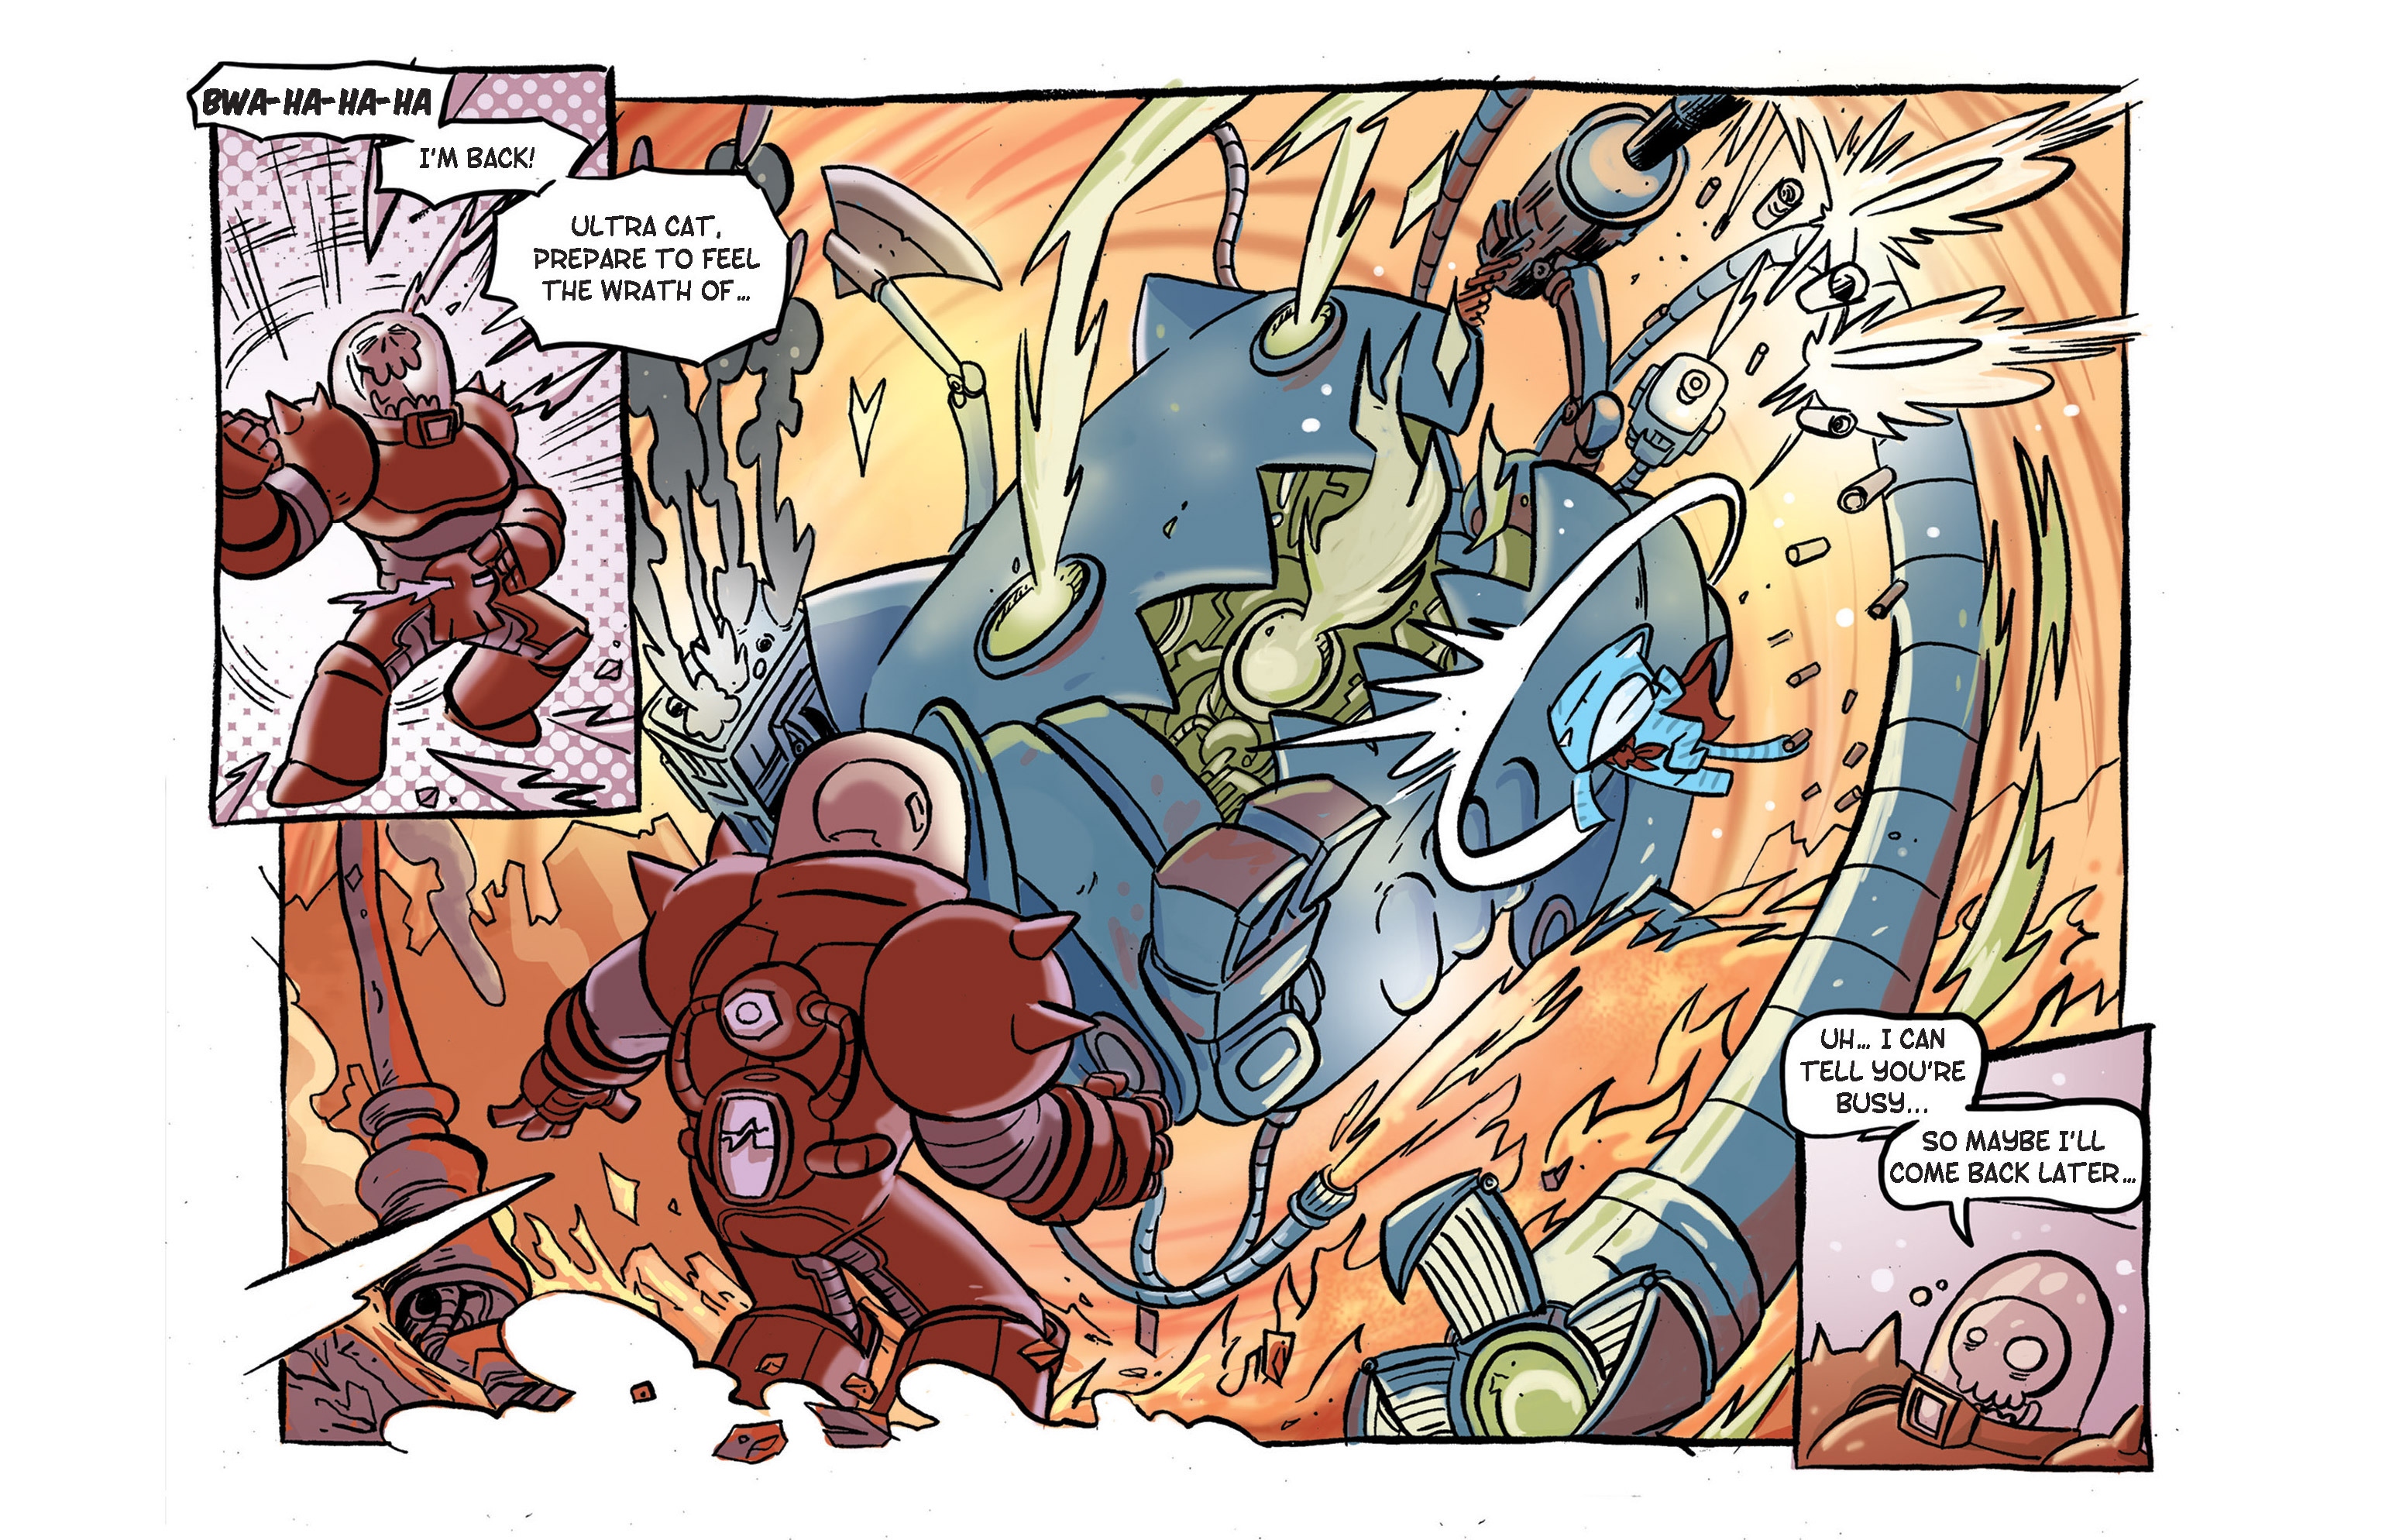 Read online Ultracat comic -  Issue #2 - 22